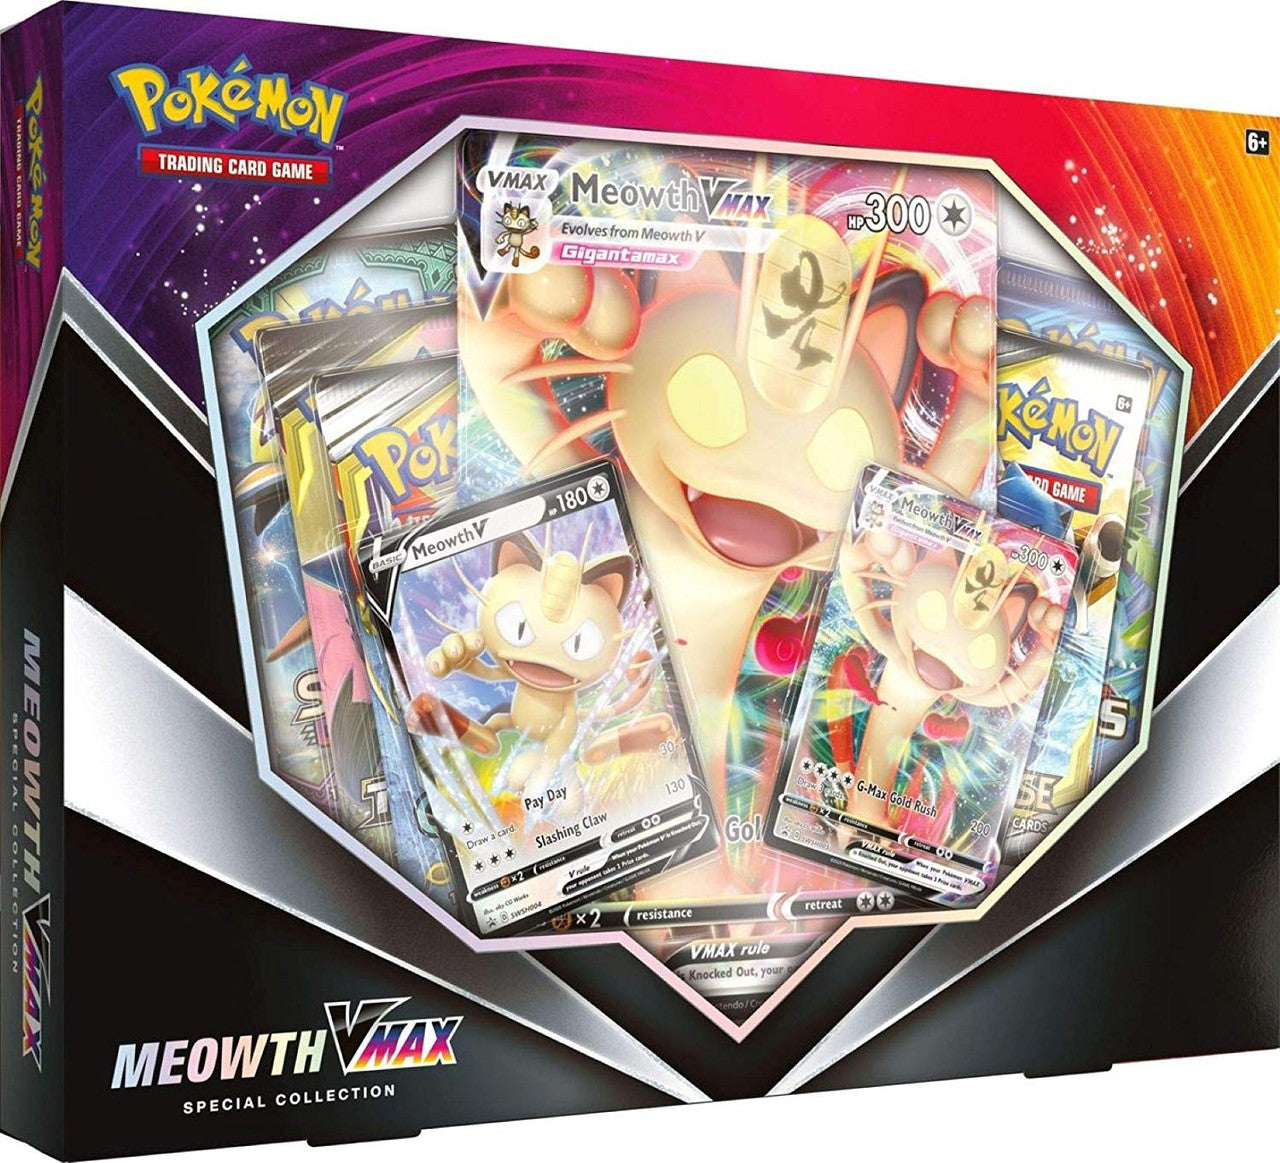 PoKeMoN Meowth VMAX Box | All About Games